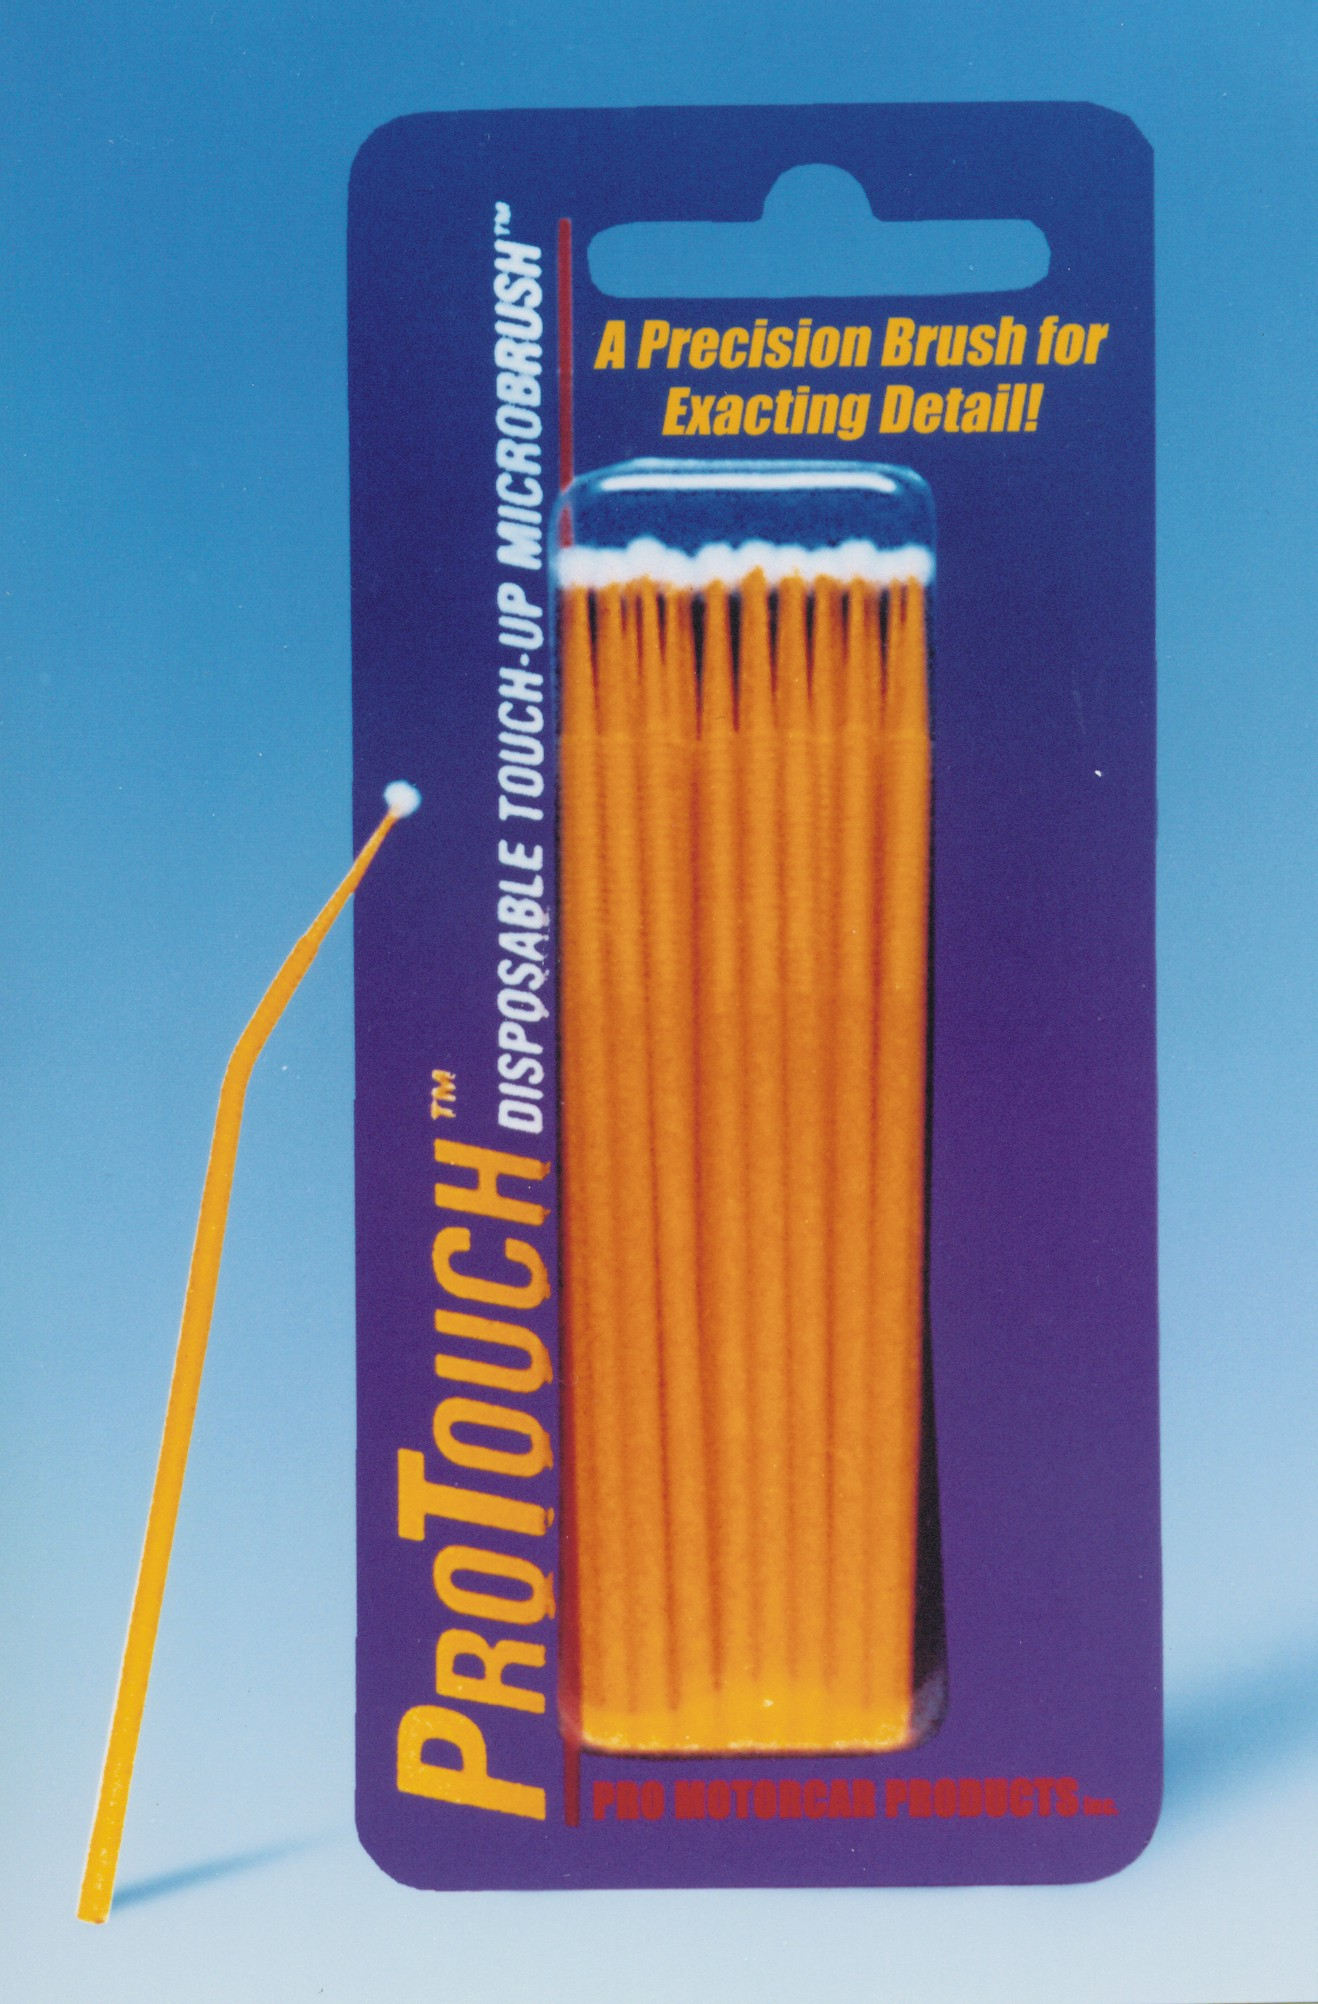 Protouch Brush PM9437.jpg